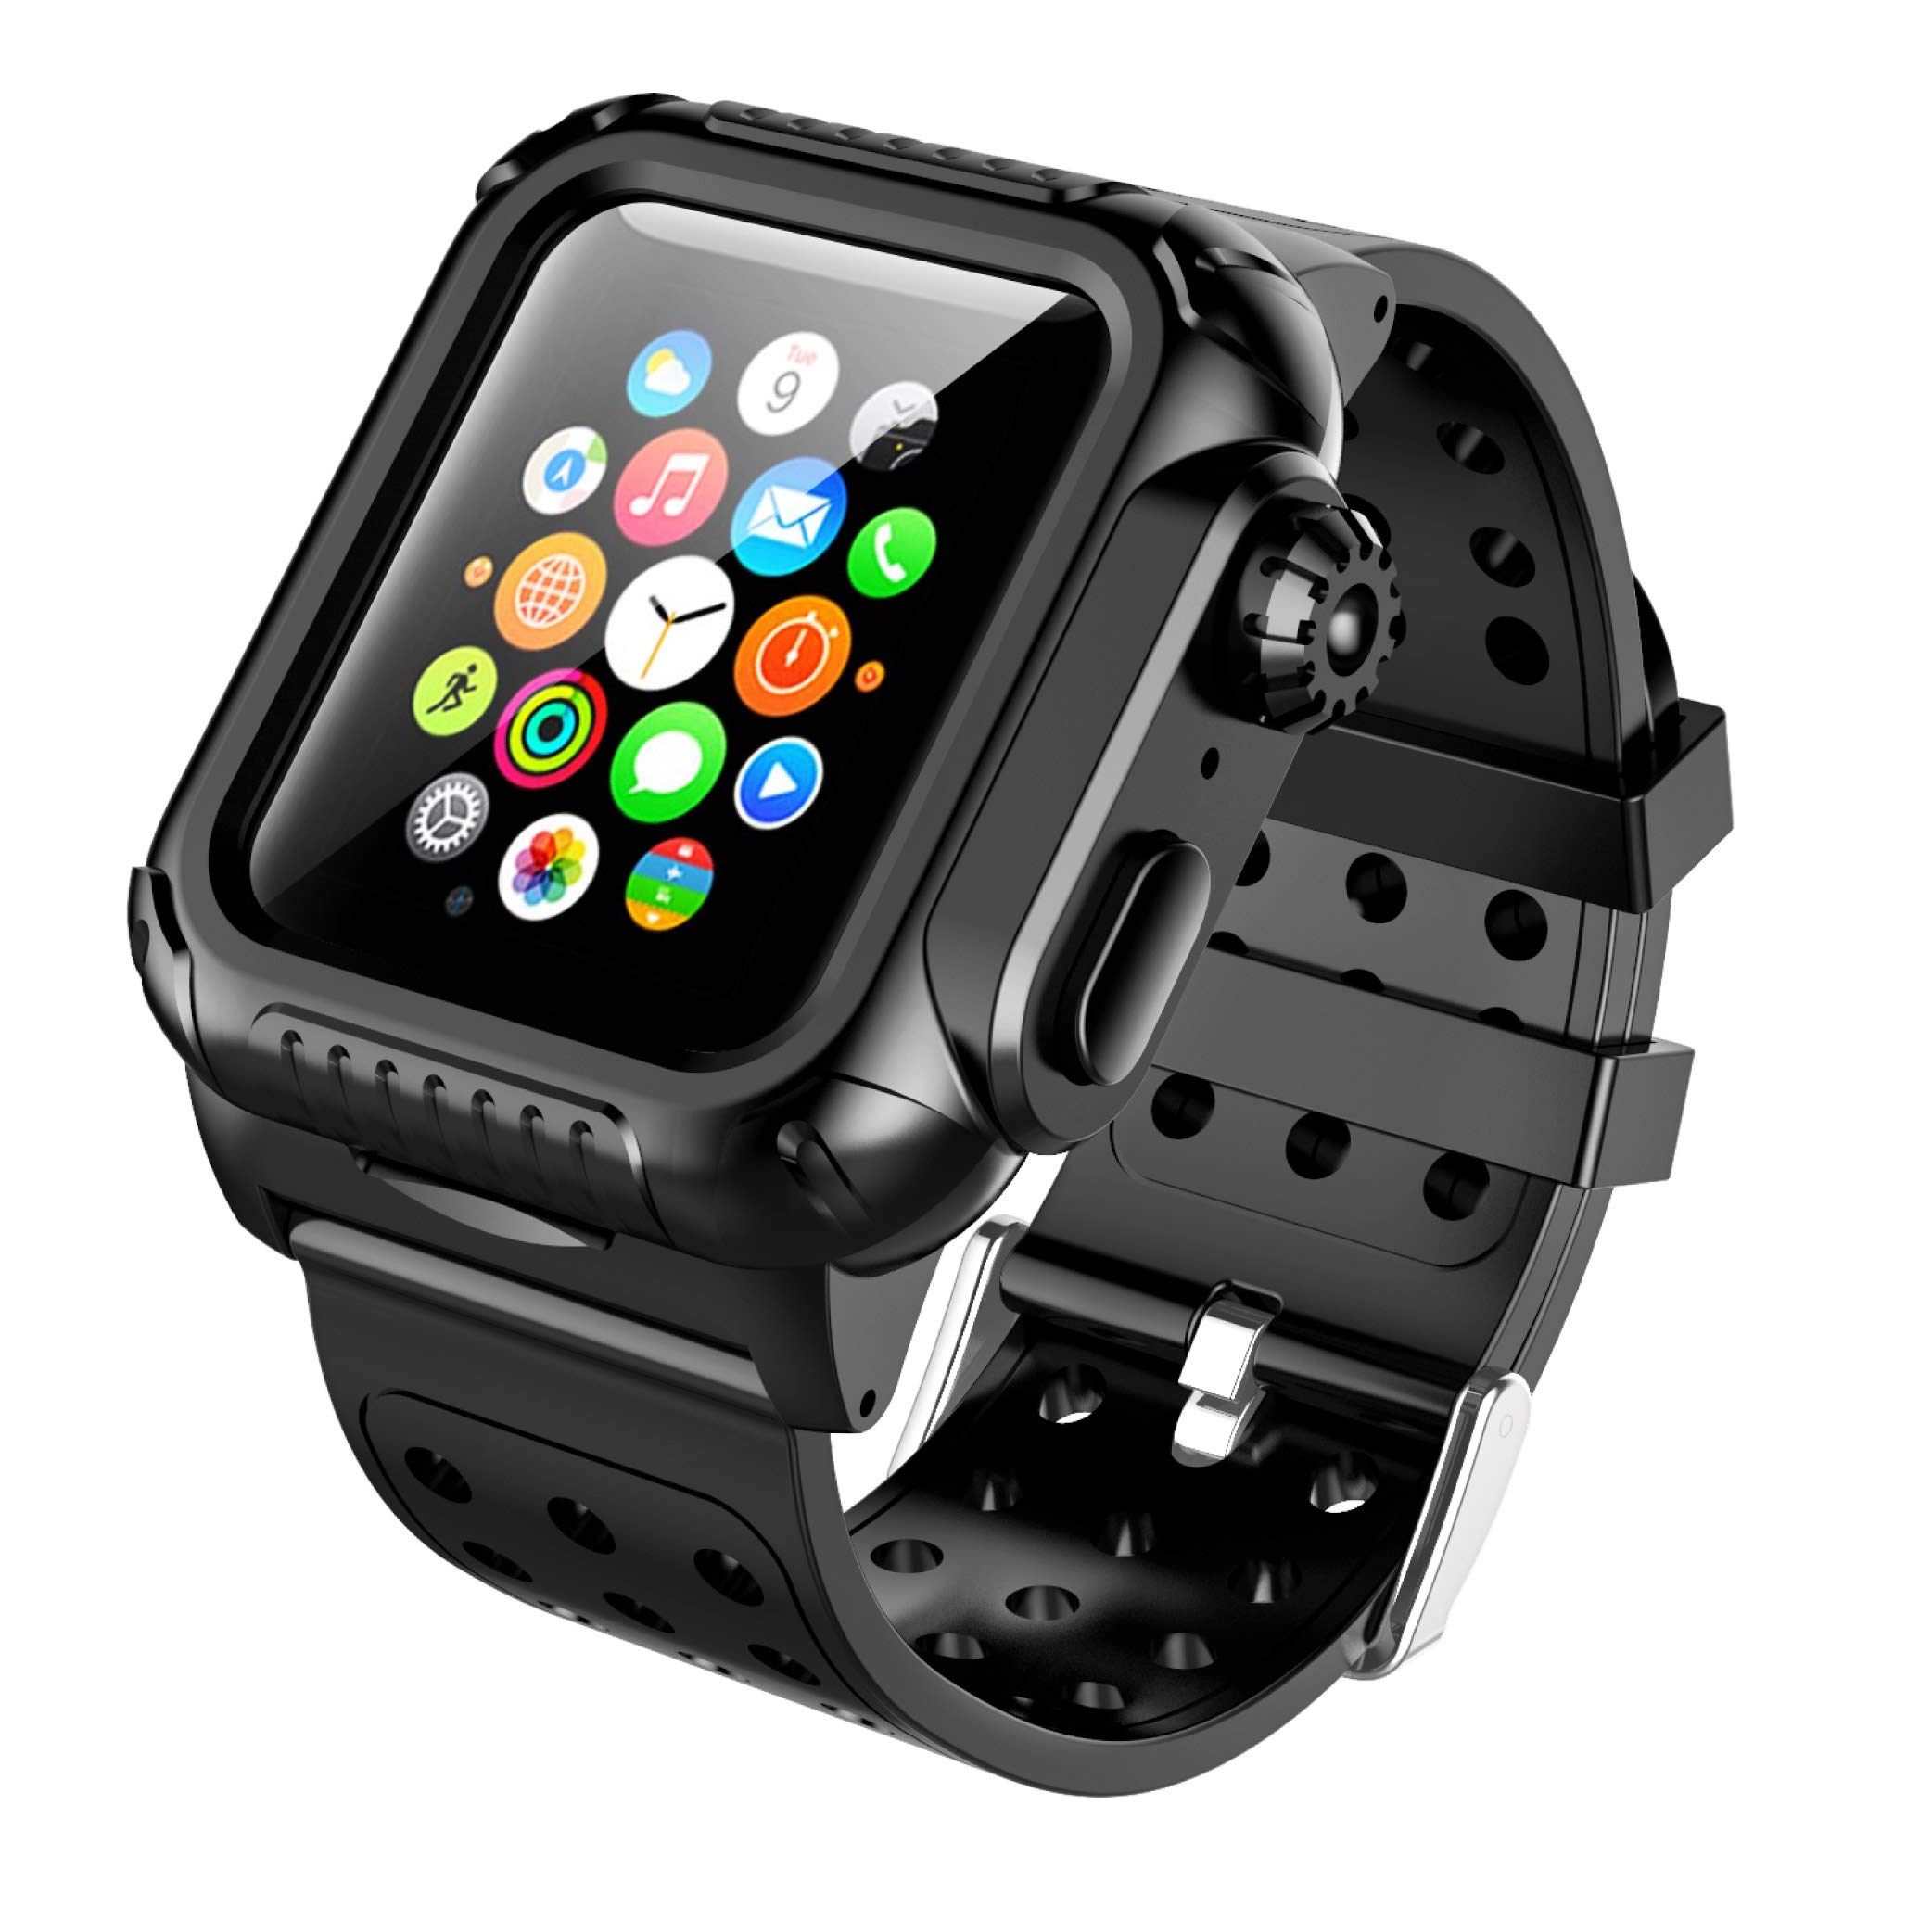 Apple Watch 4 40mm Case Band, SPIDERCASE 360° Rugged Case with Strap Band, Built-in Screen Protector Full Body Cover Case for Apple Watch Series 4 40mm ONLY, Anti-Scratch, Shockproof and More